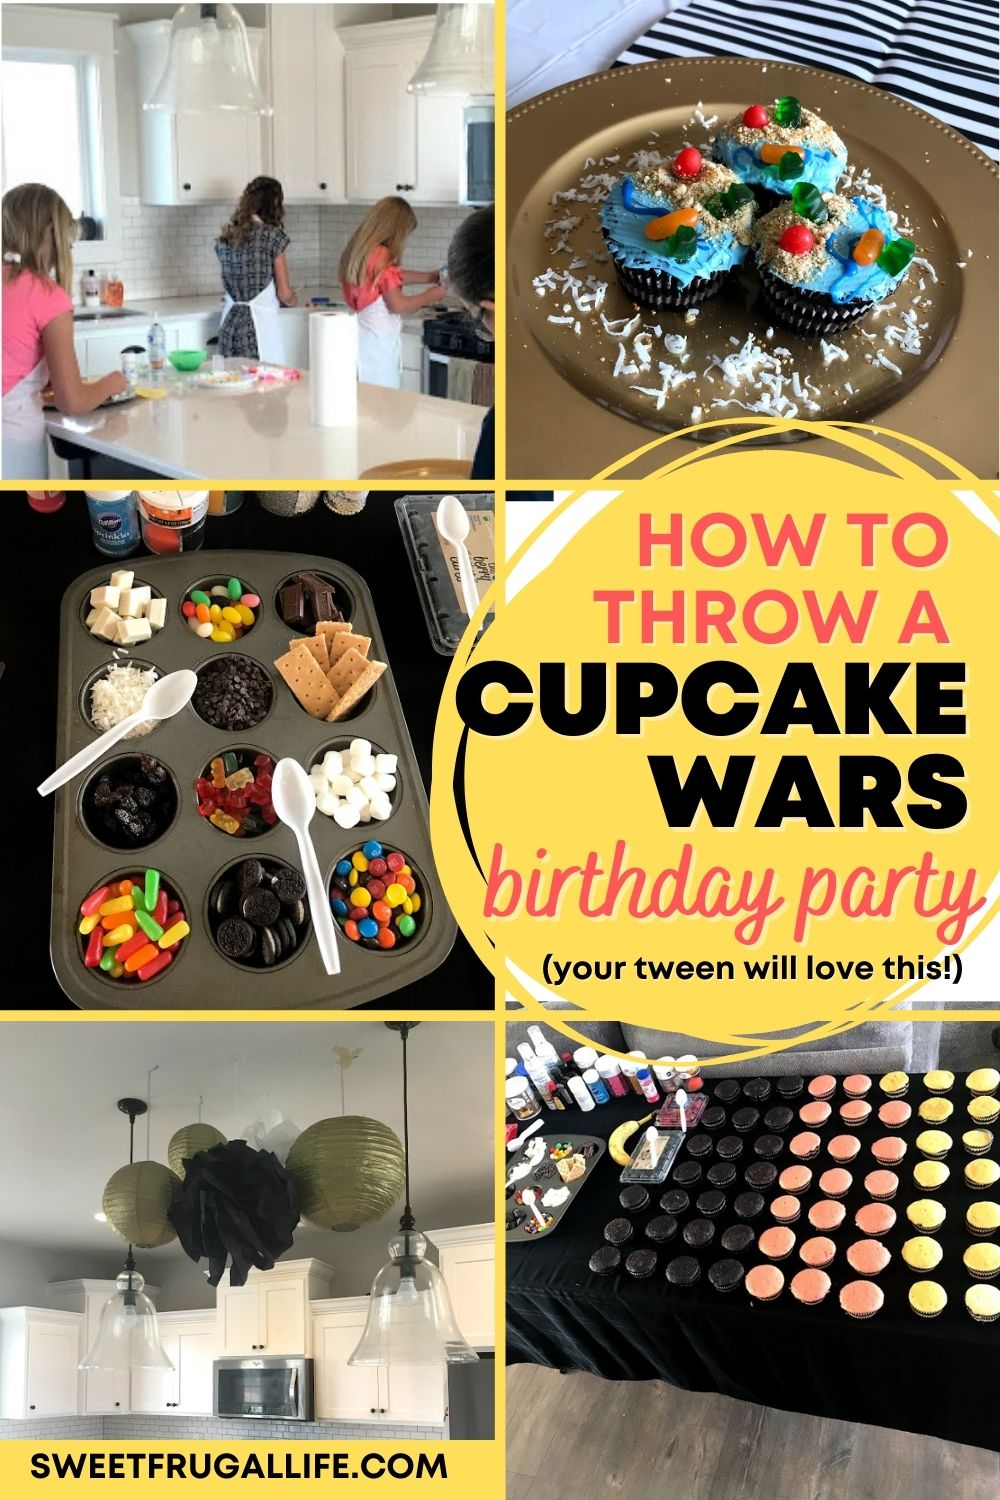 cupcake wars birthday party ideas - tween birthday party ideas